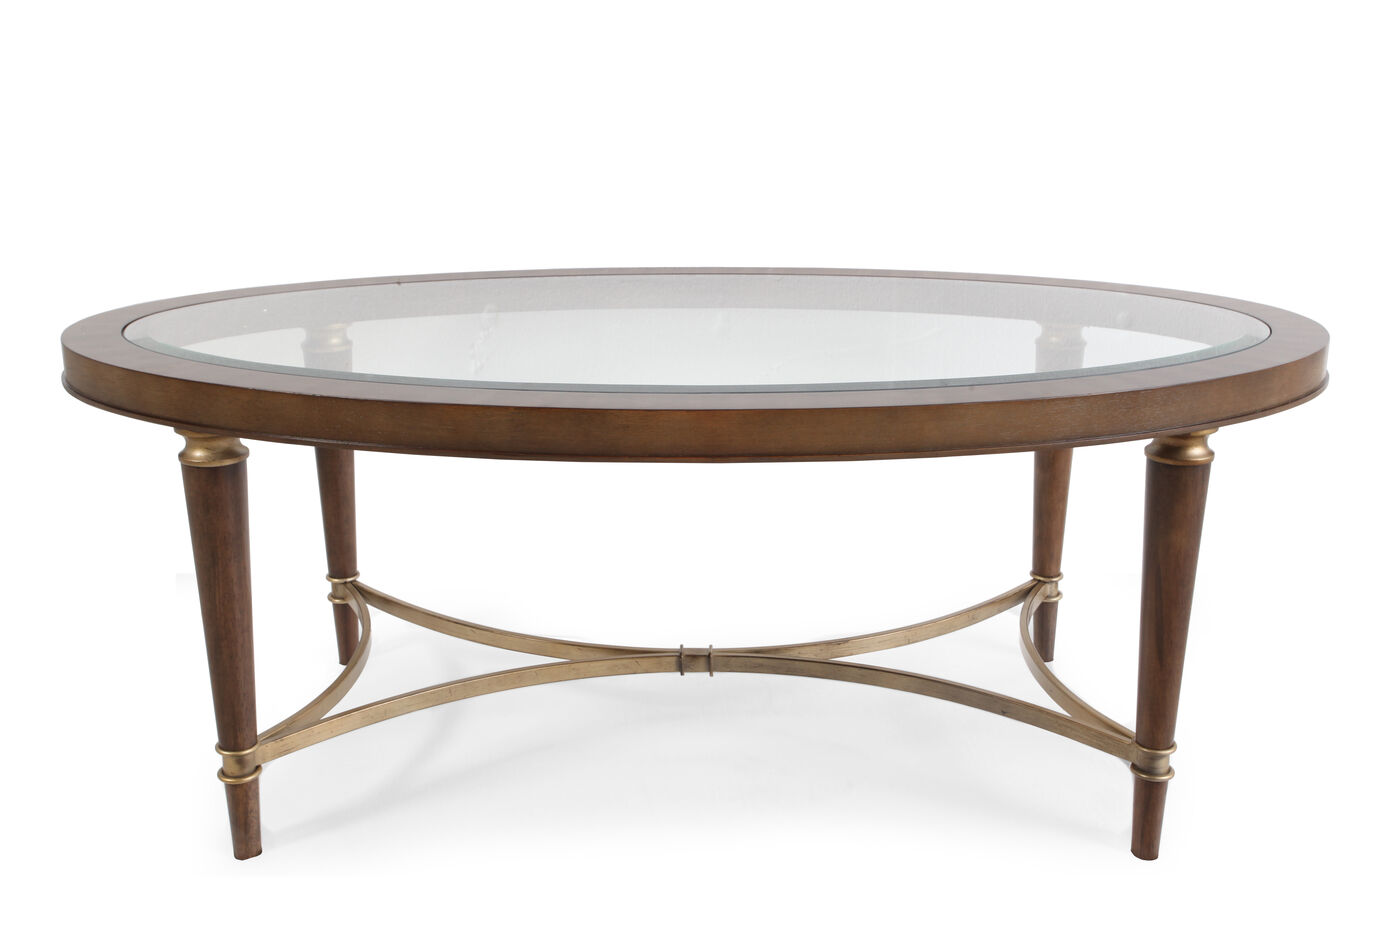 Broyhill Kristen Oval Cocktail Table - Broyhill Kristen Oval Cocktail Table Mathis Brothers Furniture